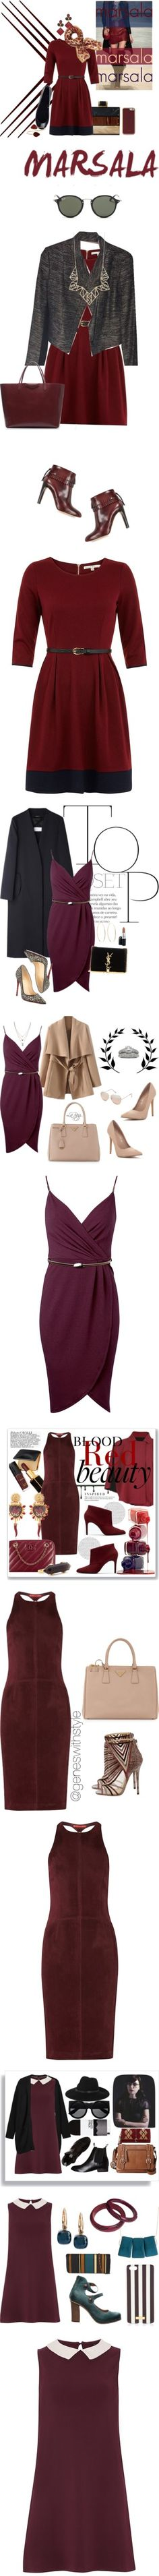 """""""14 Ways to Wear a Burgundy Dress"""" by polyvore-editorial ❤ liked on Polyvore"""